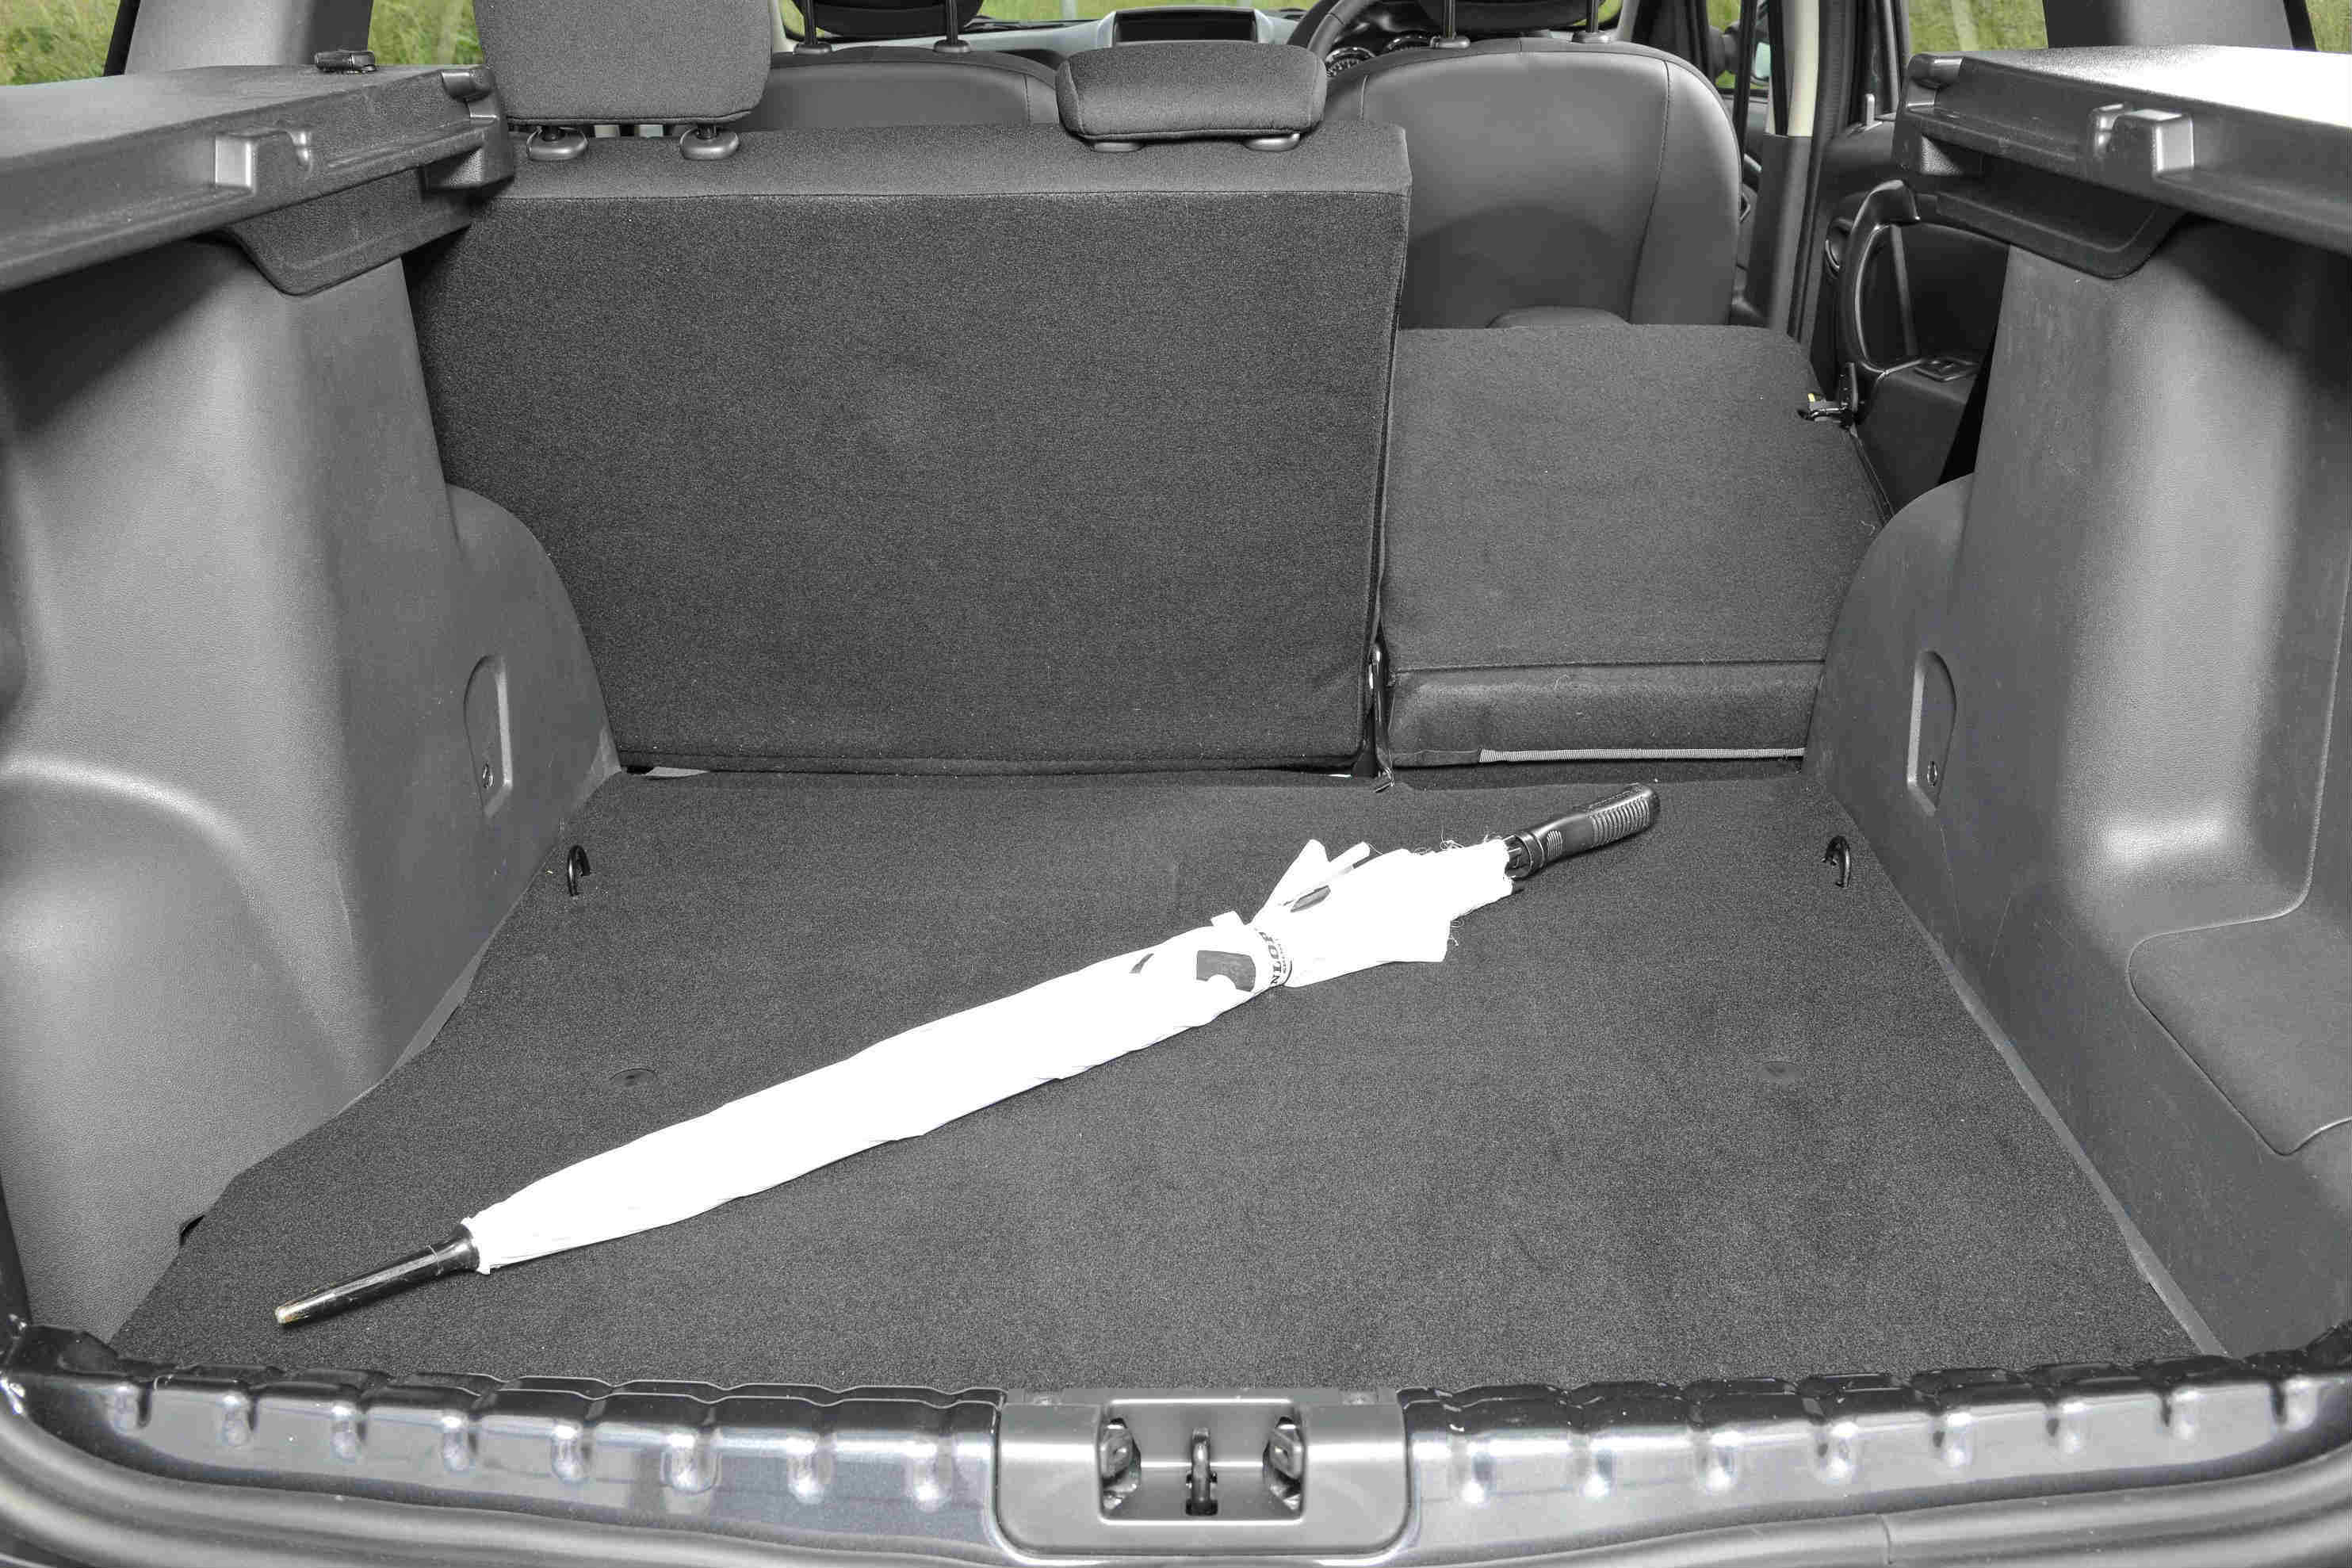 image of an umbrella inside the boot of a dacia duster